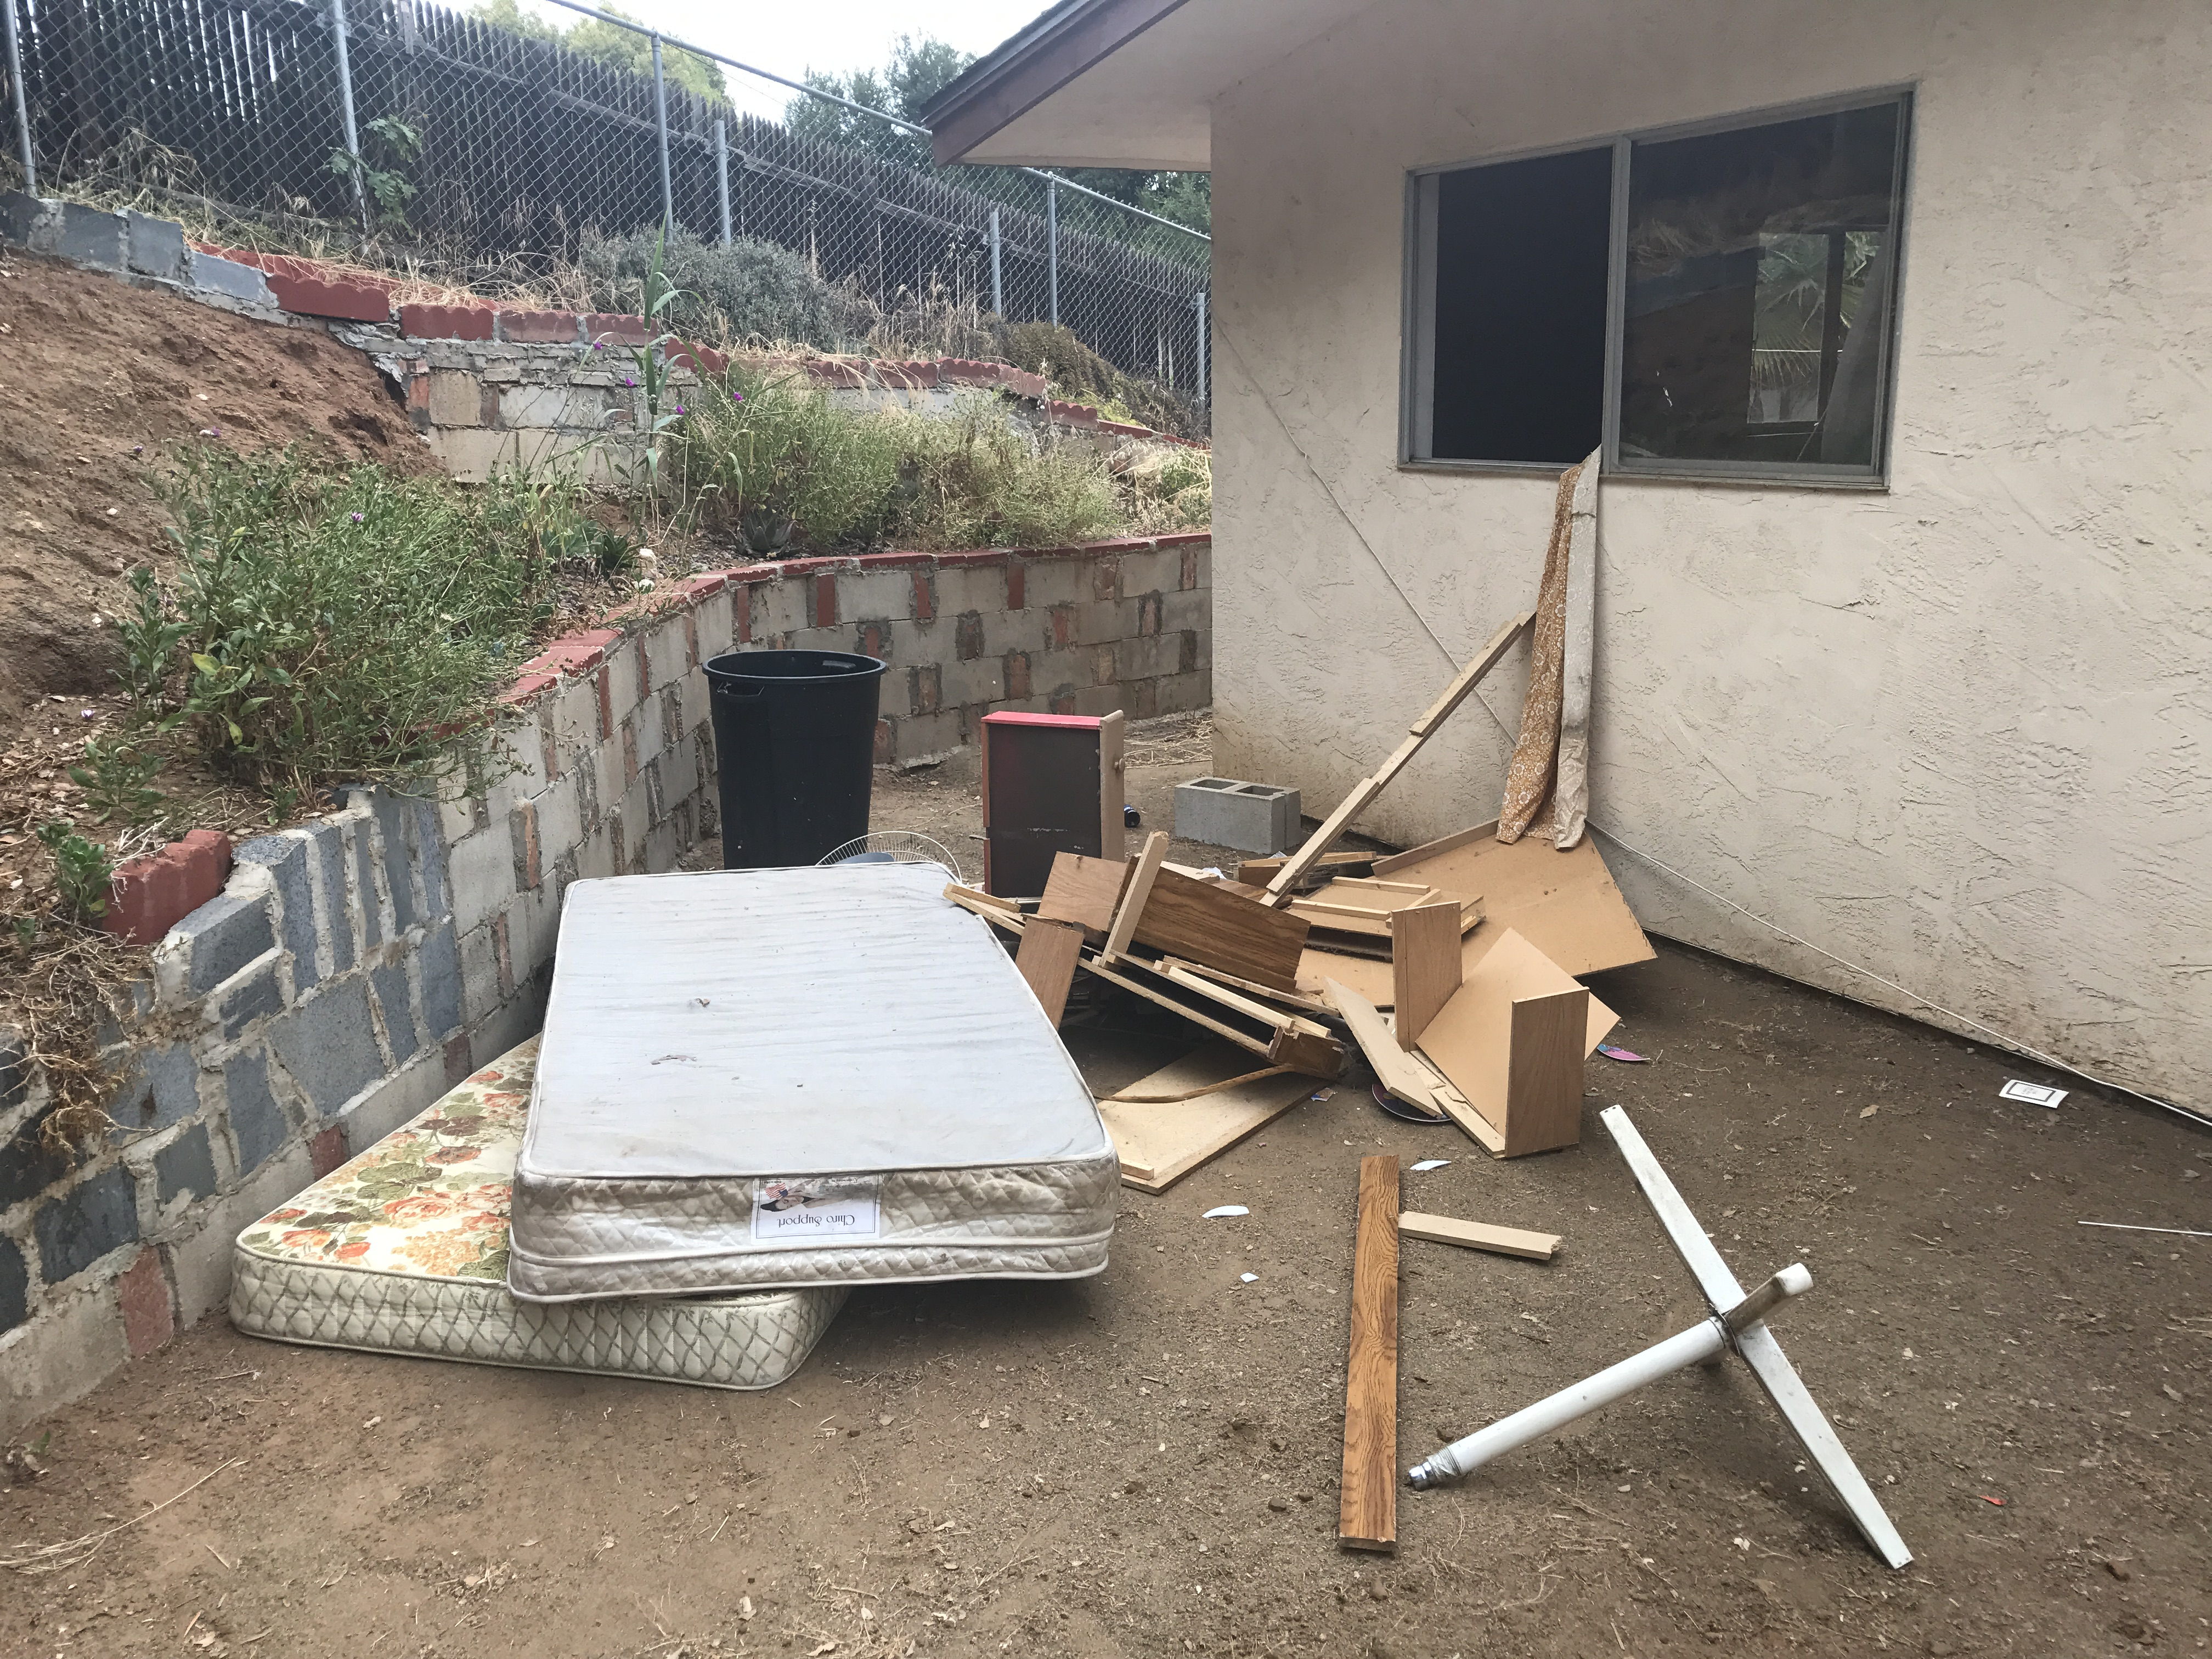 Furniture Disposal Removal Amp Pickup In San Diego Ace